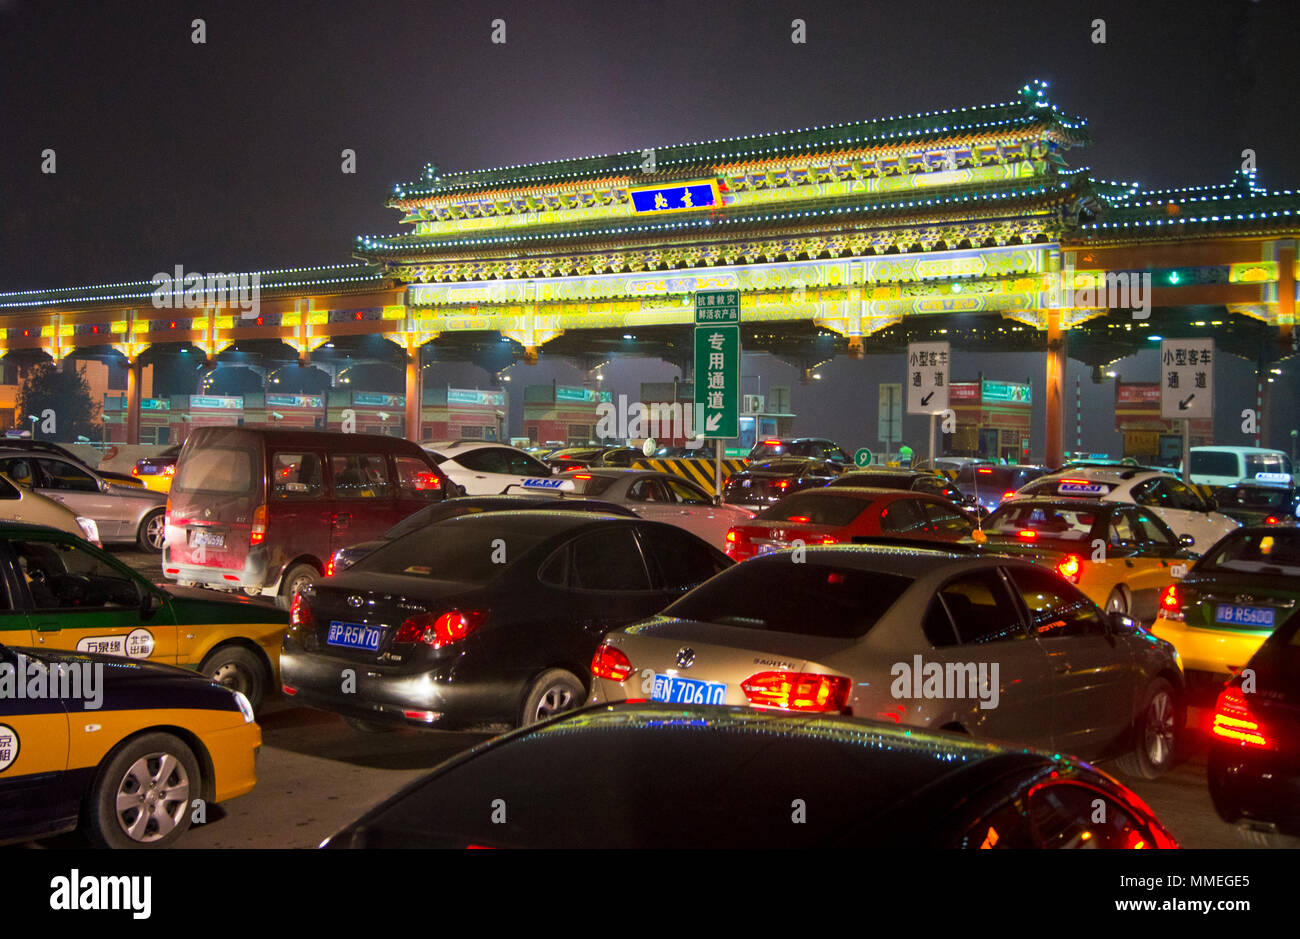 A traffic queue at toll booths on one of the main road in Beijing, China, photographed at night. - Stock Image